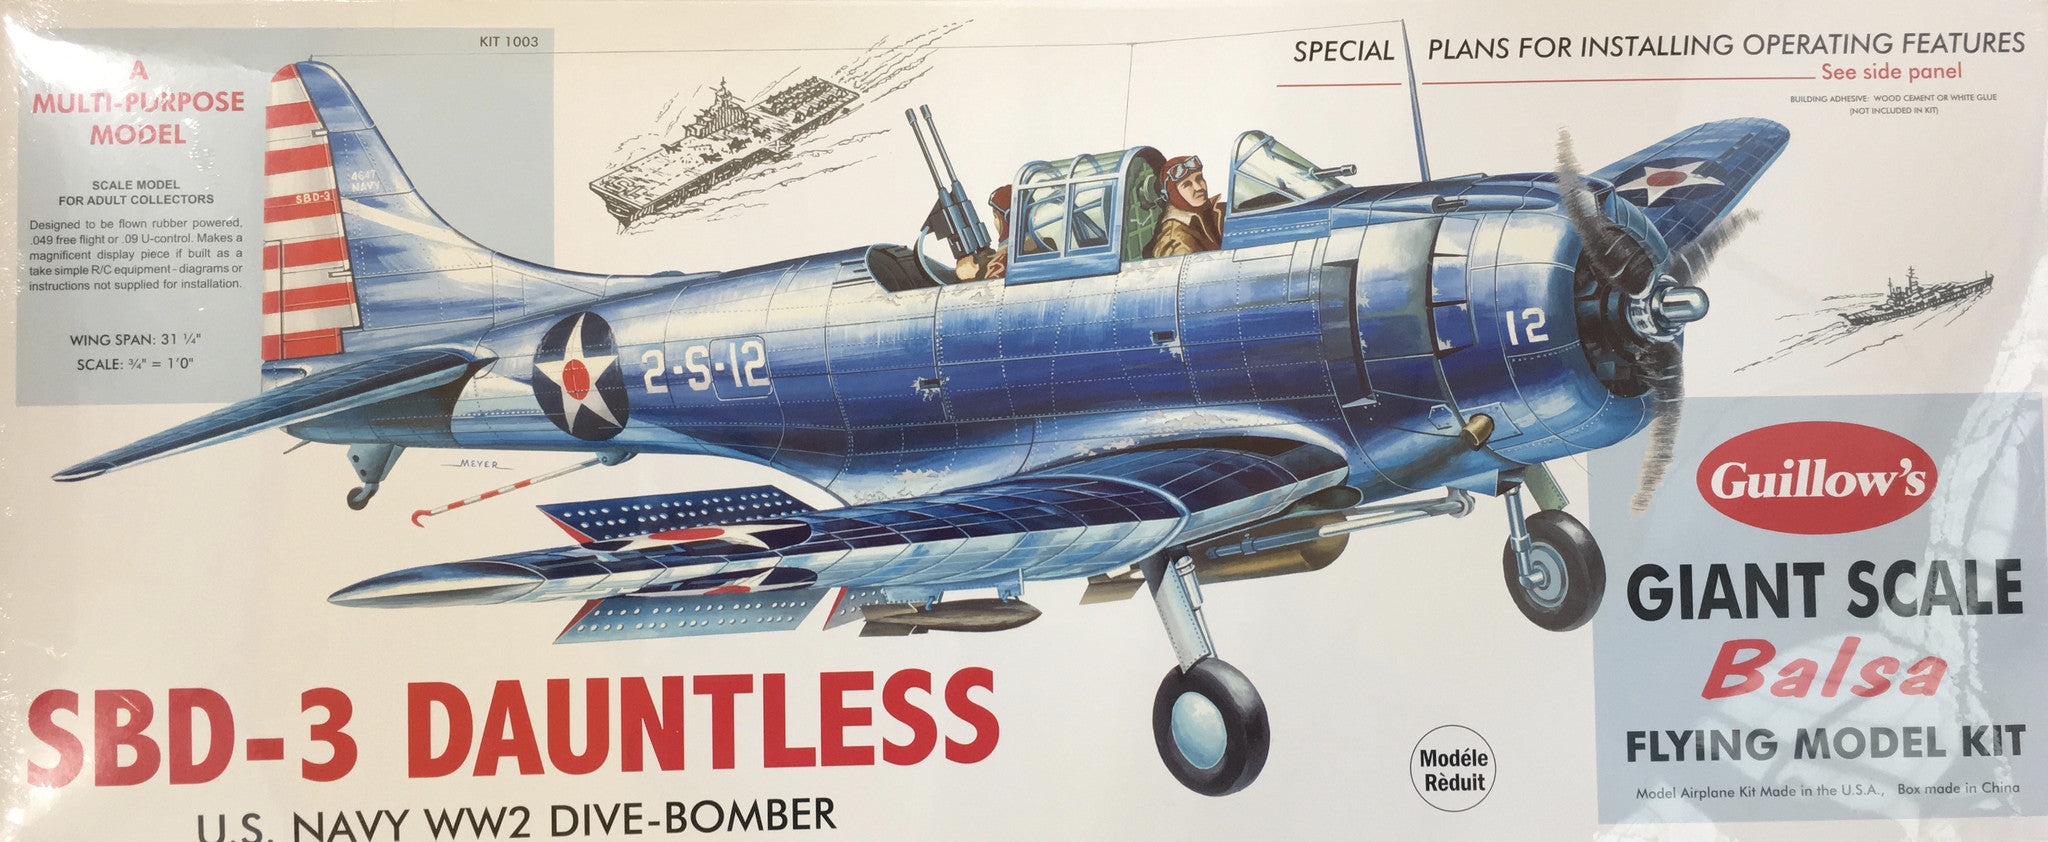 SBD-3 Dauntless Giant Scale Balsa Flying Model Kit